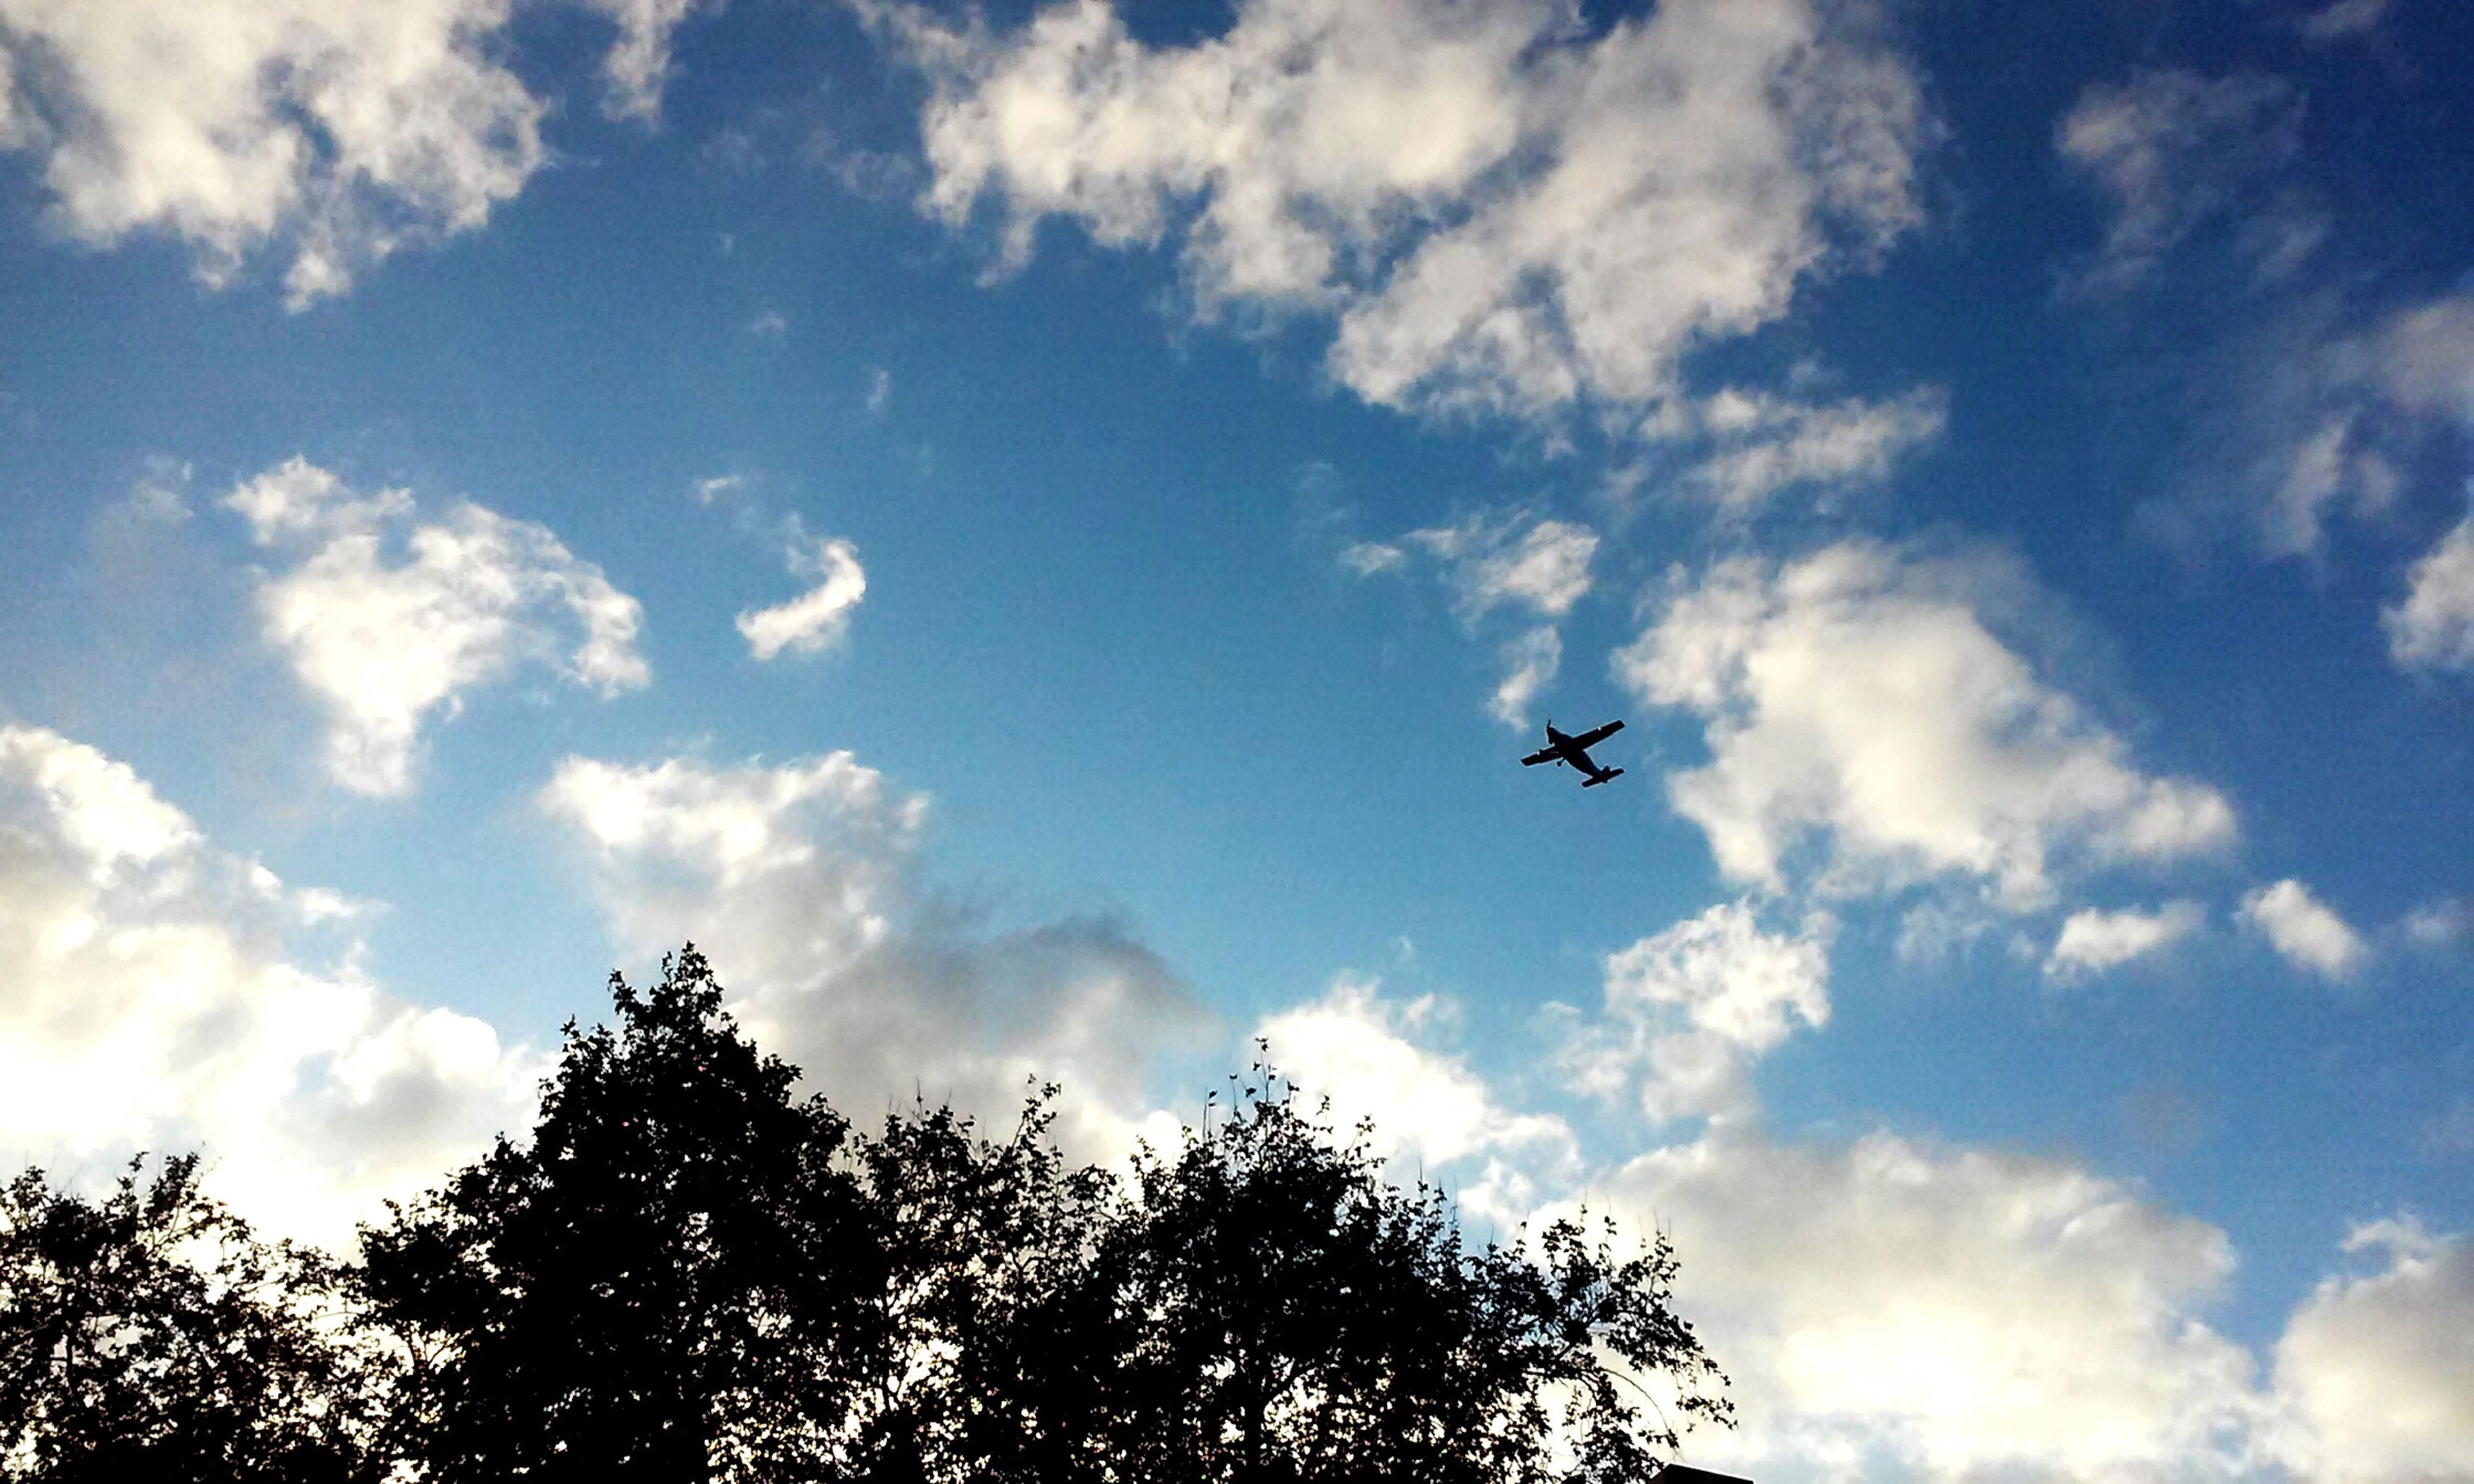 flying, low angle view, sky, mid-air, transportation, tree, airplane, air vehicle, mode of transport, cloud - sky, bird, silhouette, on the move, nature, cloudy, cloud, wildlife, animal themes, blue, day